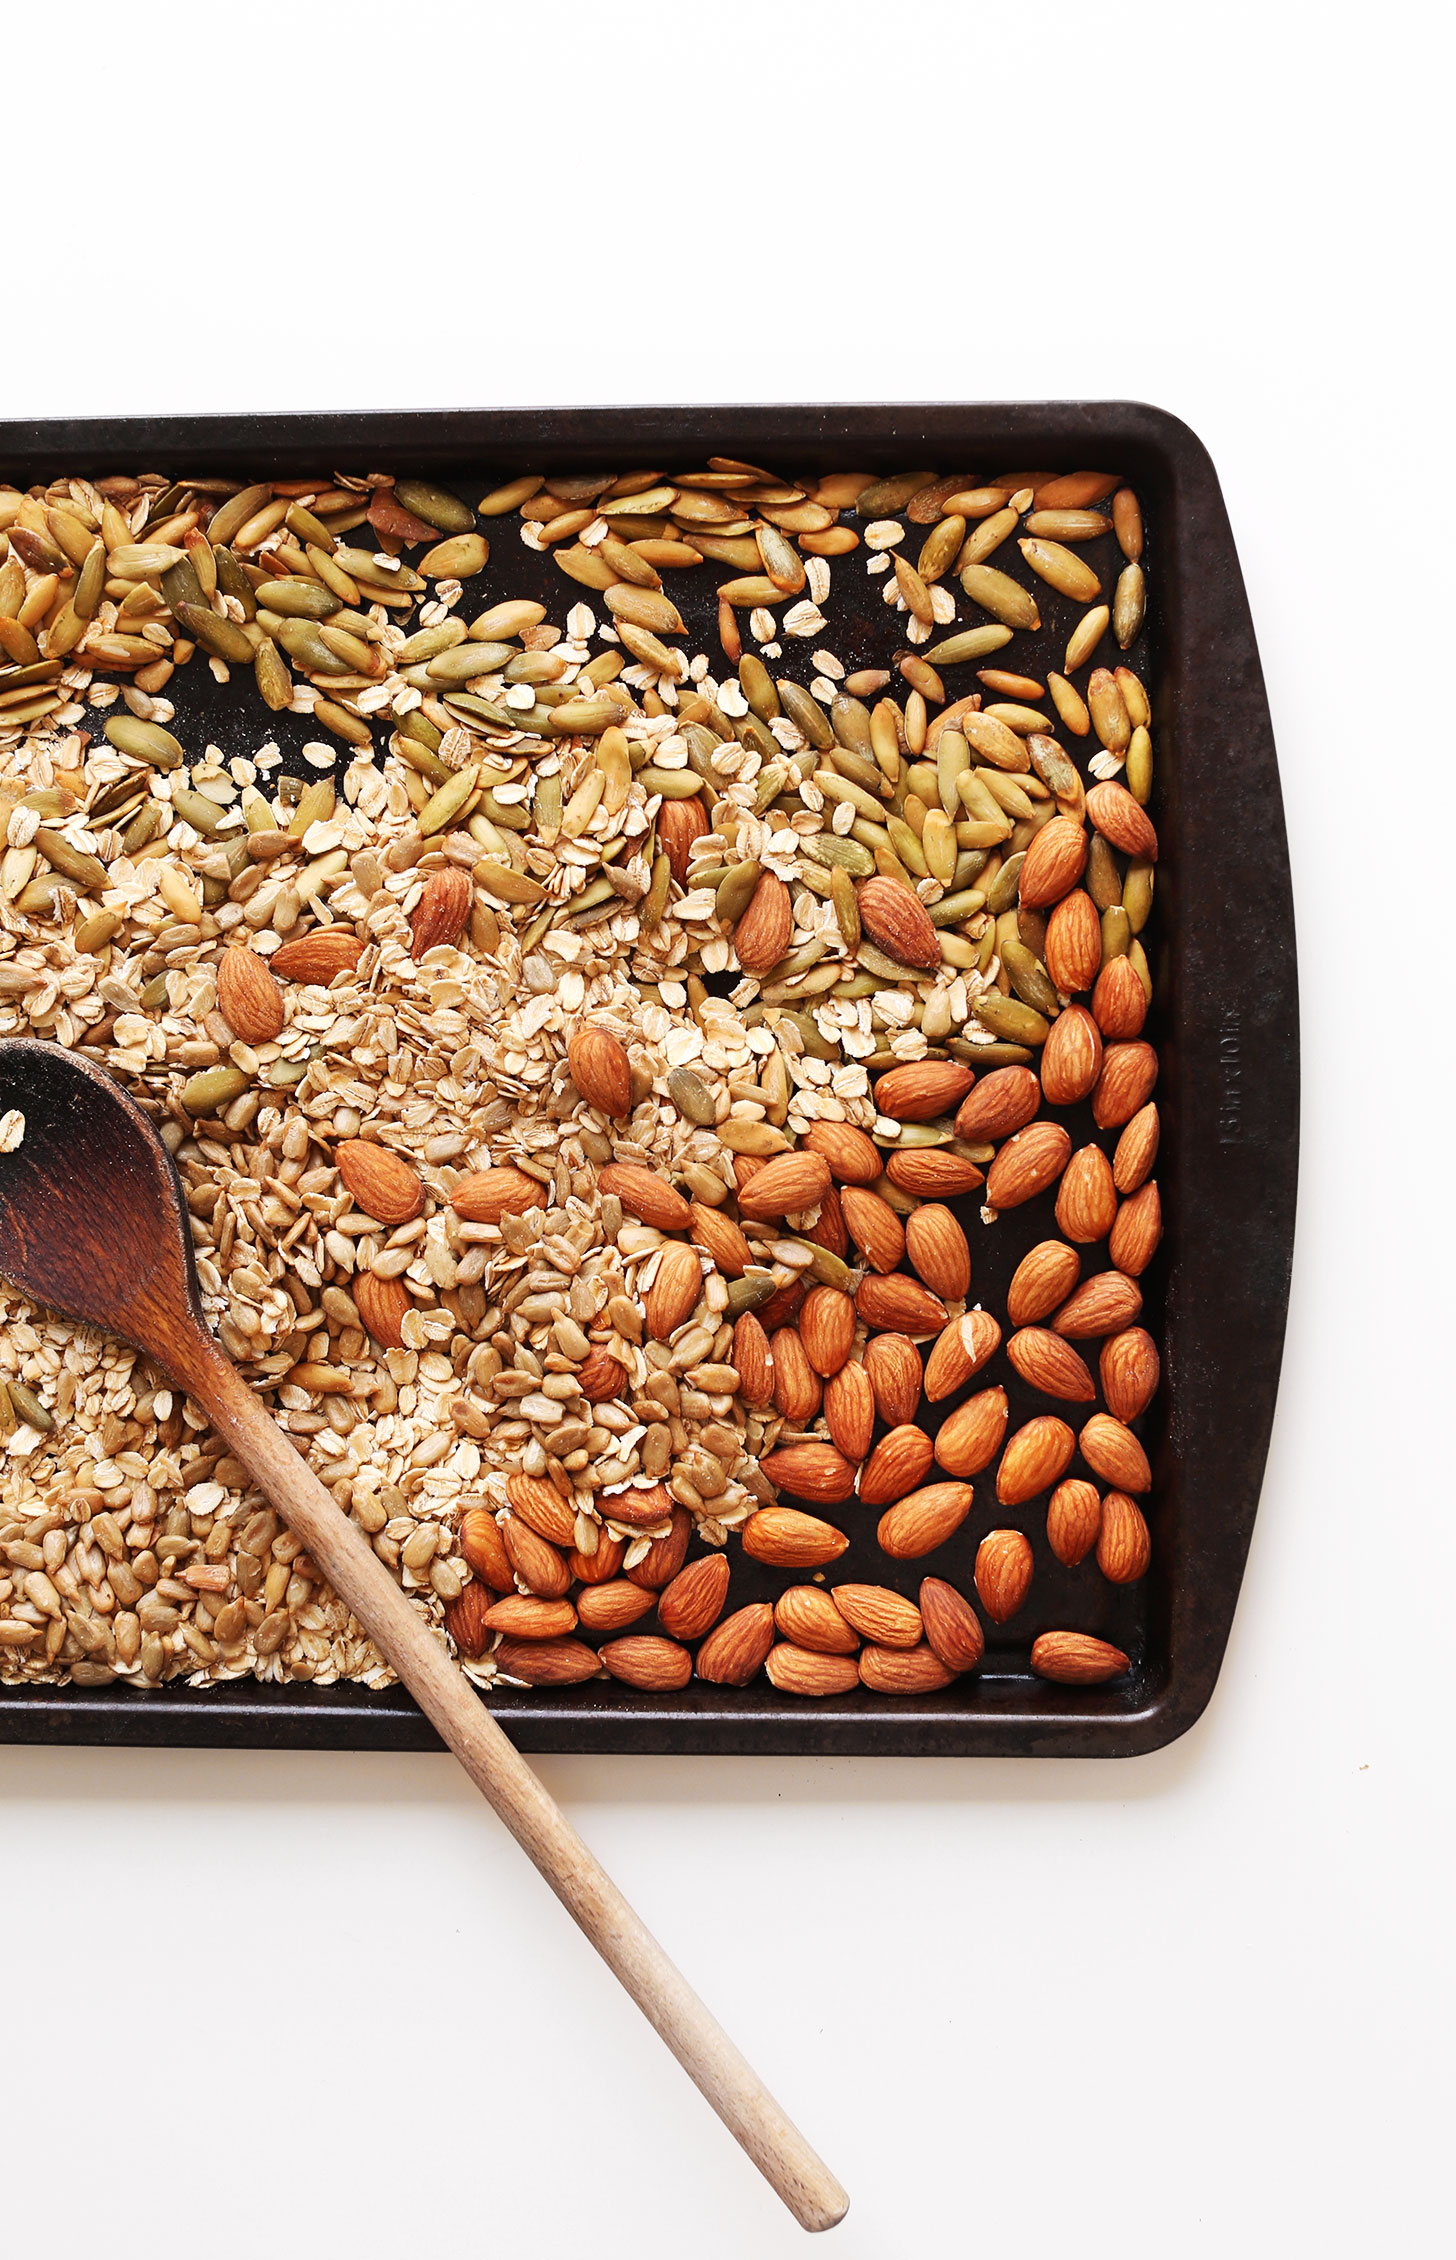 Baking sheet with nuts and seeds for making our delicious homemade muesli recipe